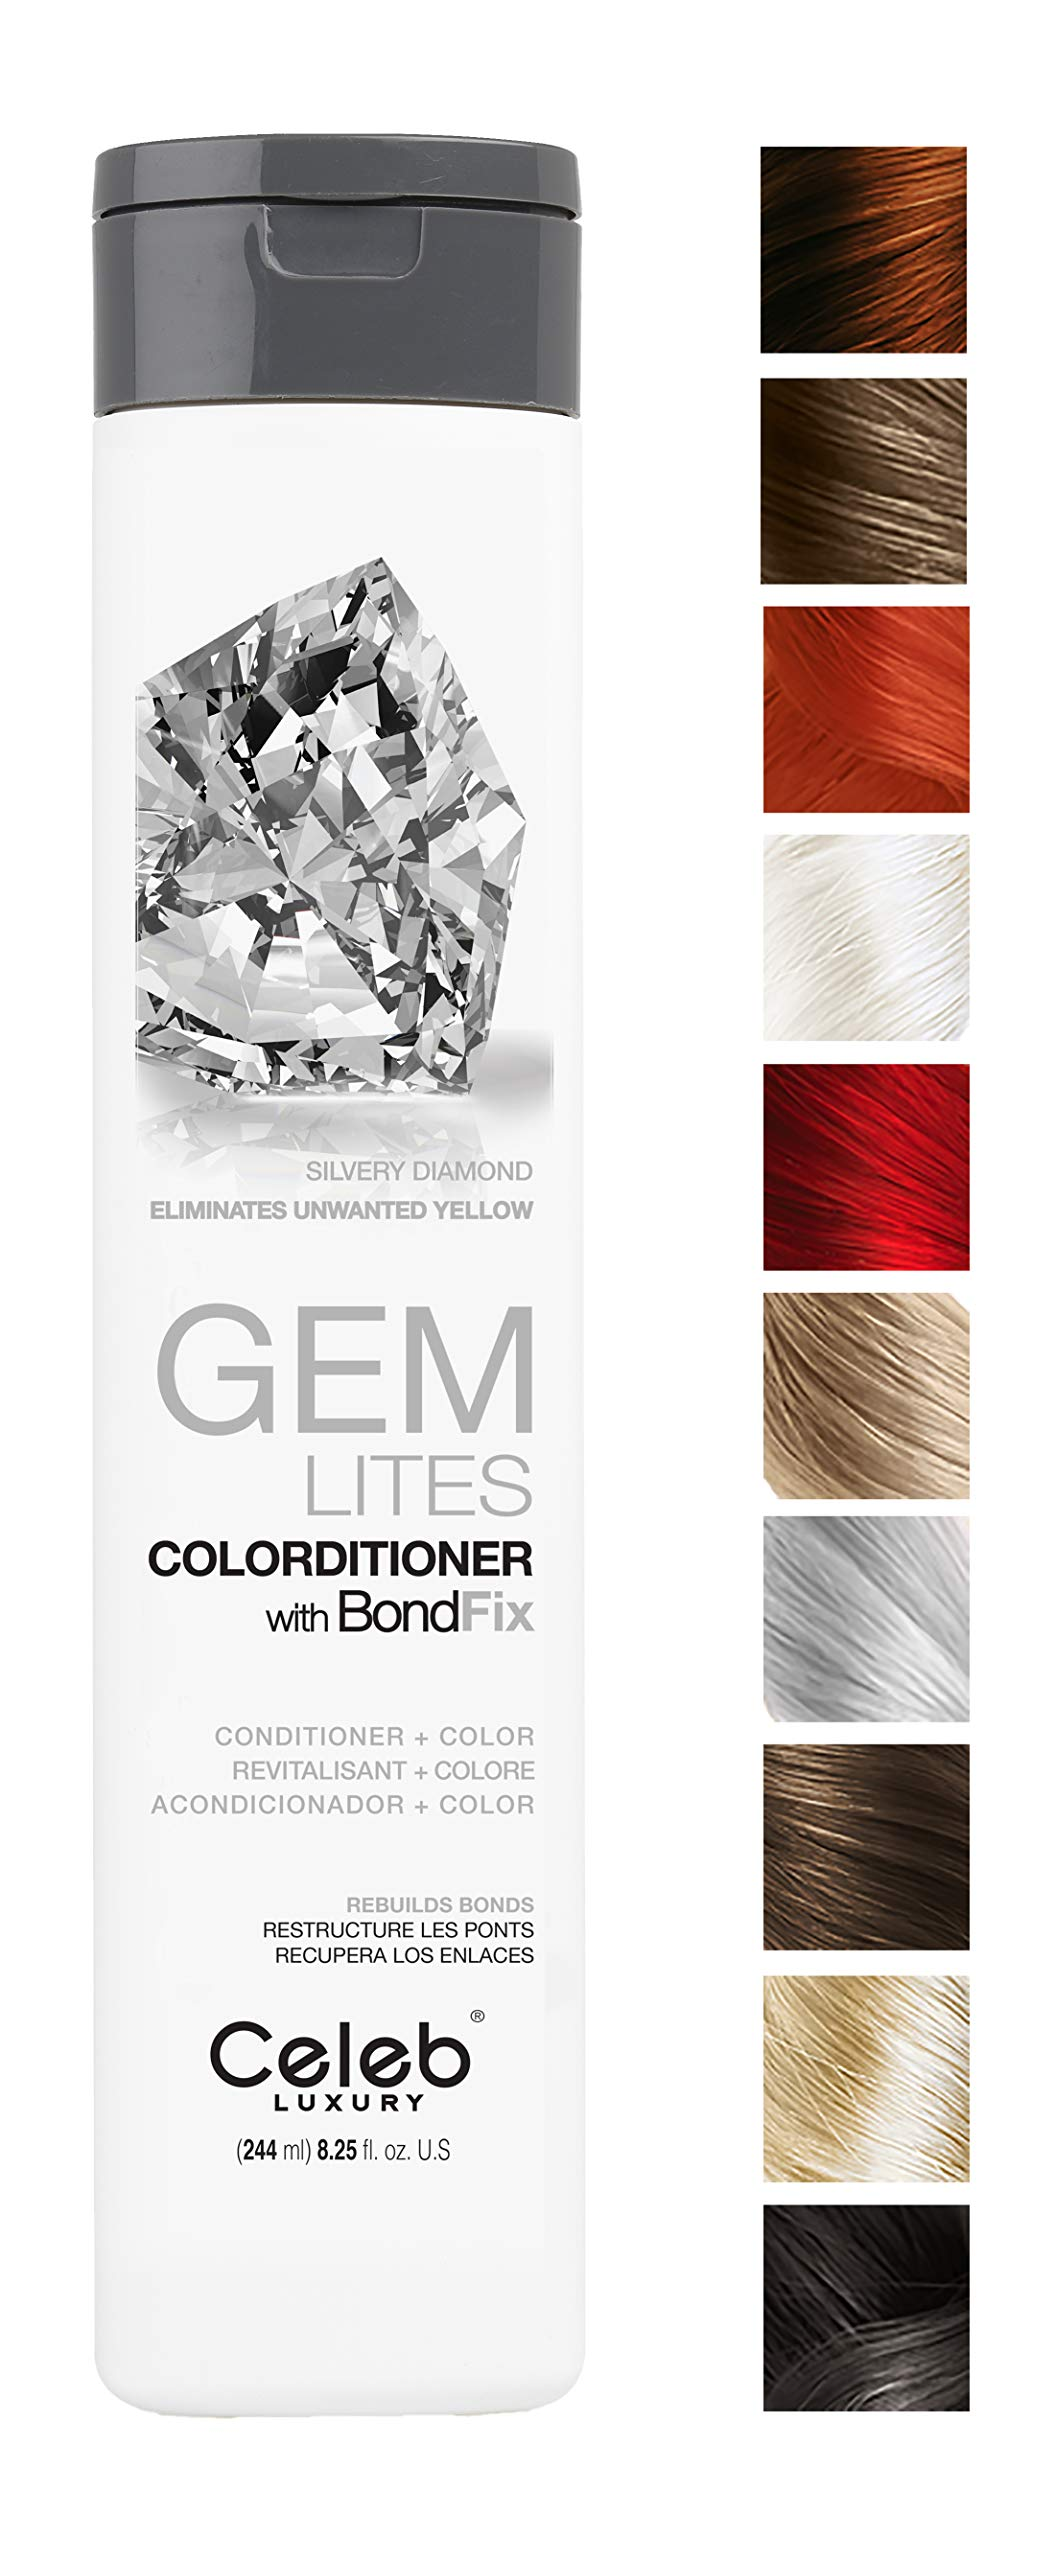 Celeb Luxury Gem Lites Colorditioner: Silvery Diamond, Hair Color Depositing Conditioner, BondFix Bond Rebuilder, Eliminates Unwanted Yellow, 10 Colors, Stops Fade, Cruelty-Free, 100% Vegan by CELEB LUXURY